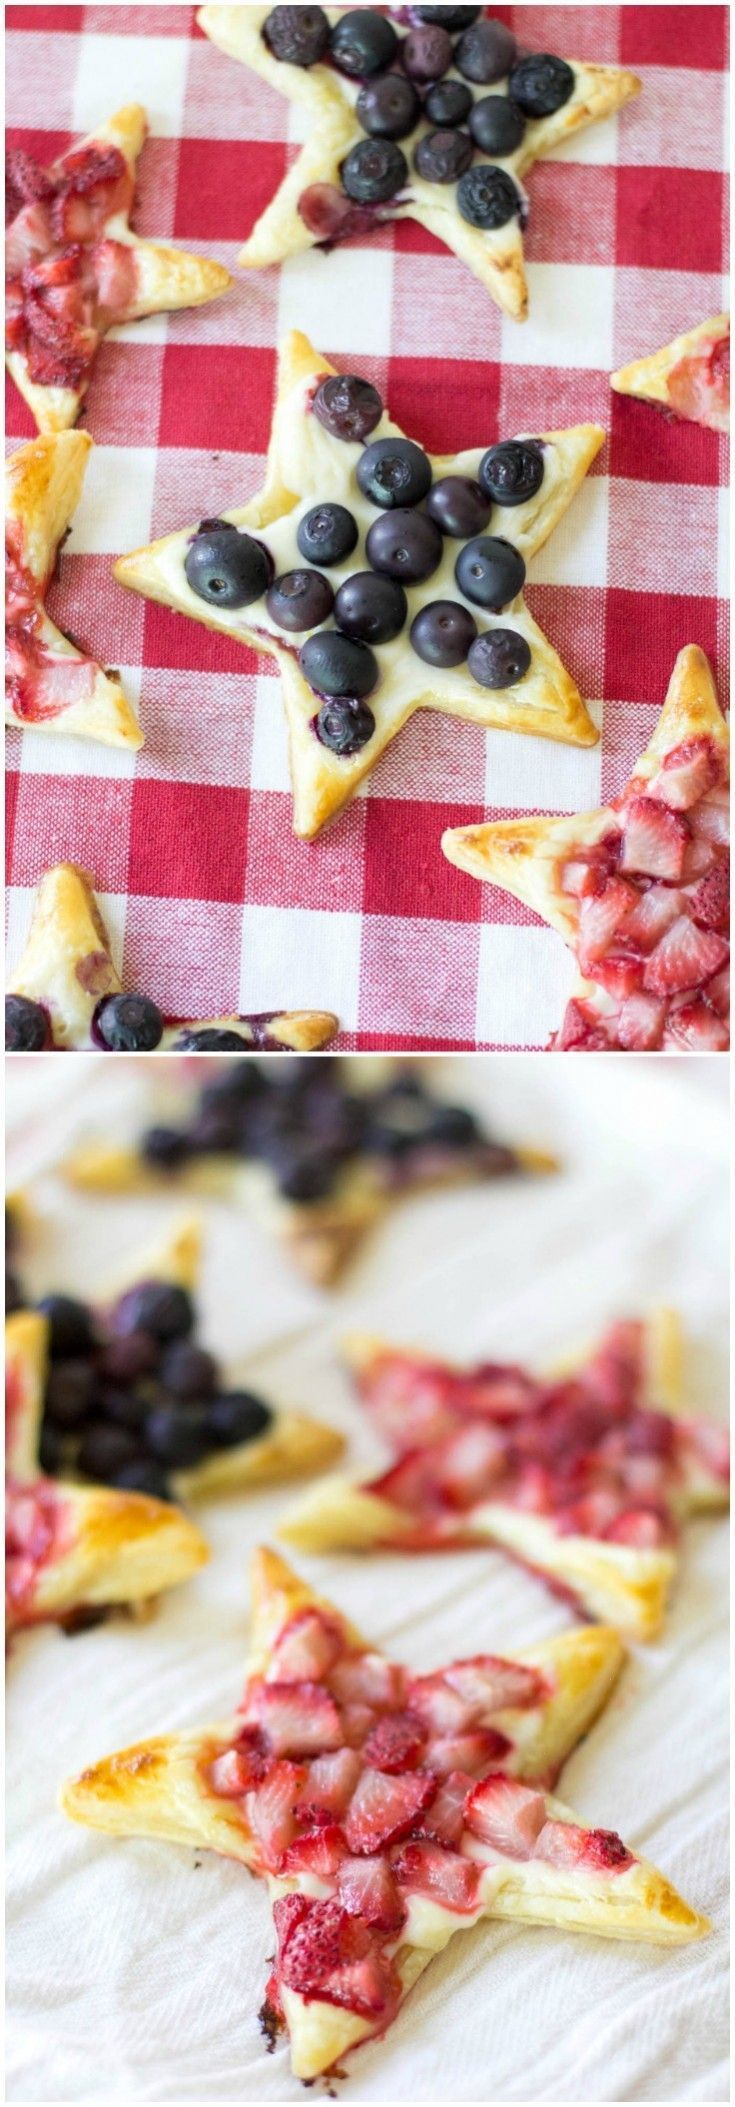 This delicious puff pastry recipe is perfect for summer! You'll use mixed berries along with cream cheese to make this tasty, star-shaped dessert. via @diy_candy